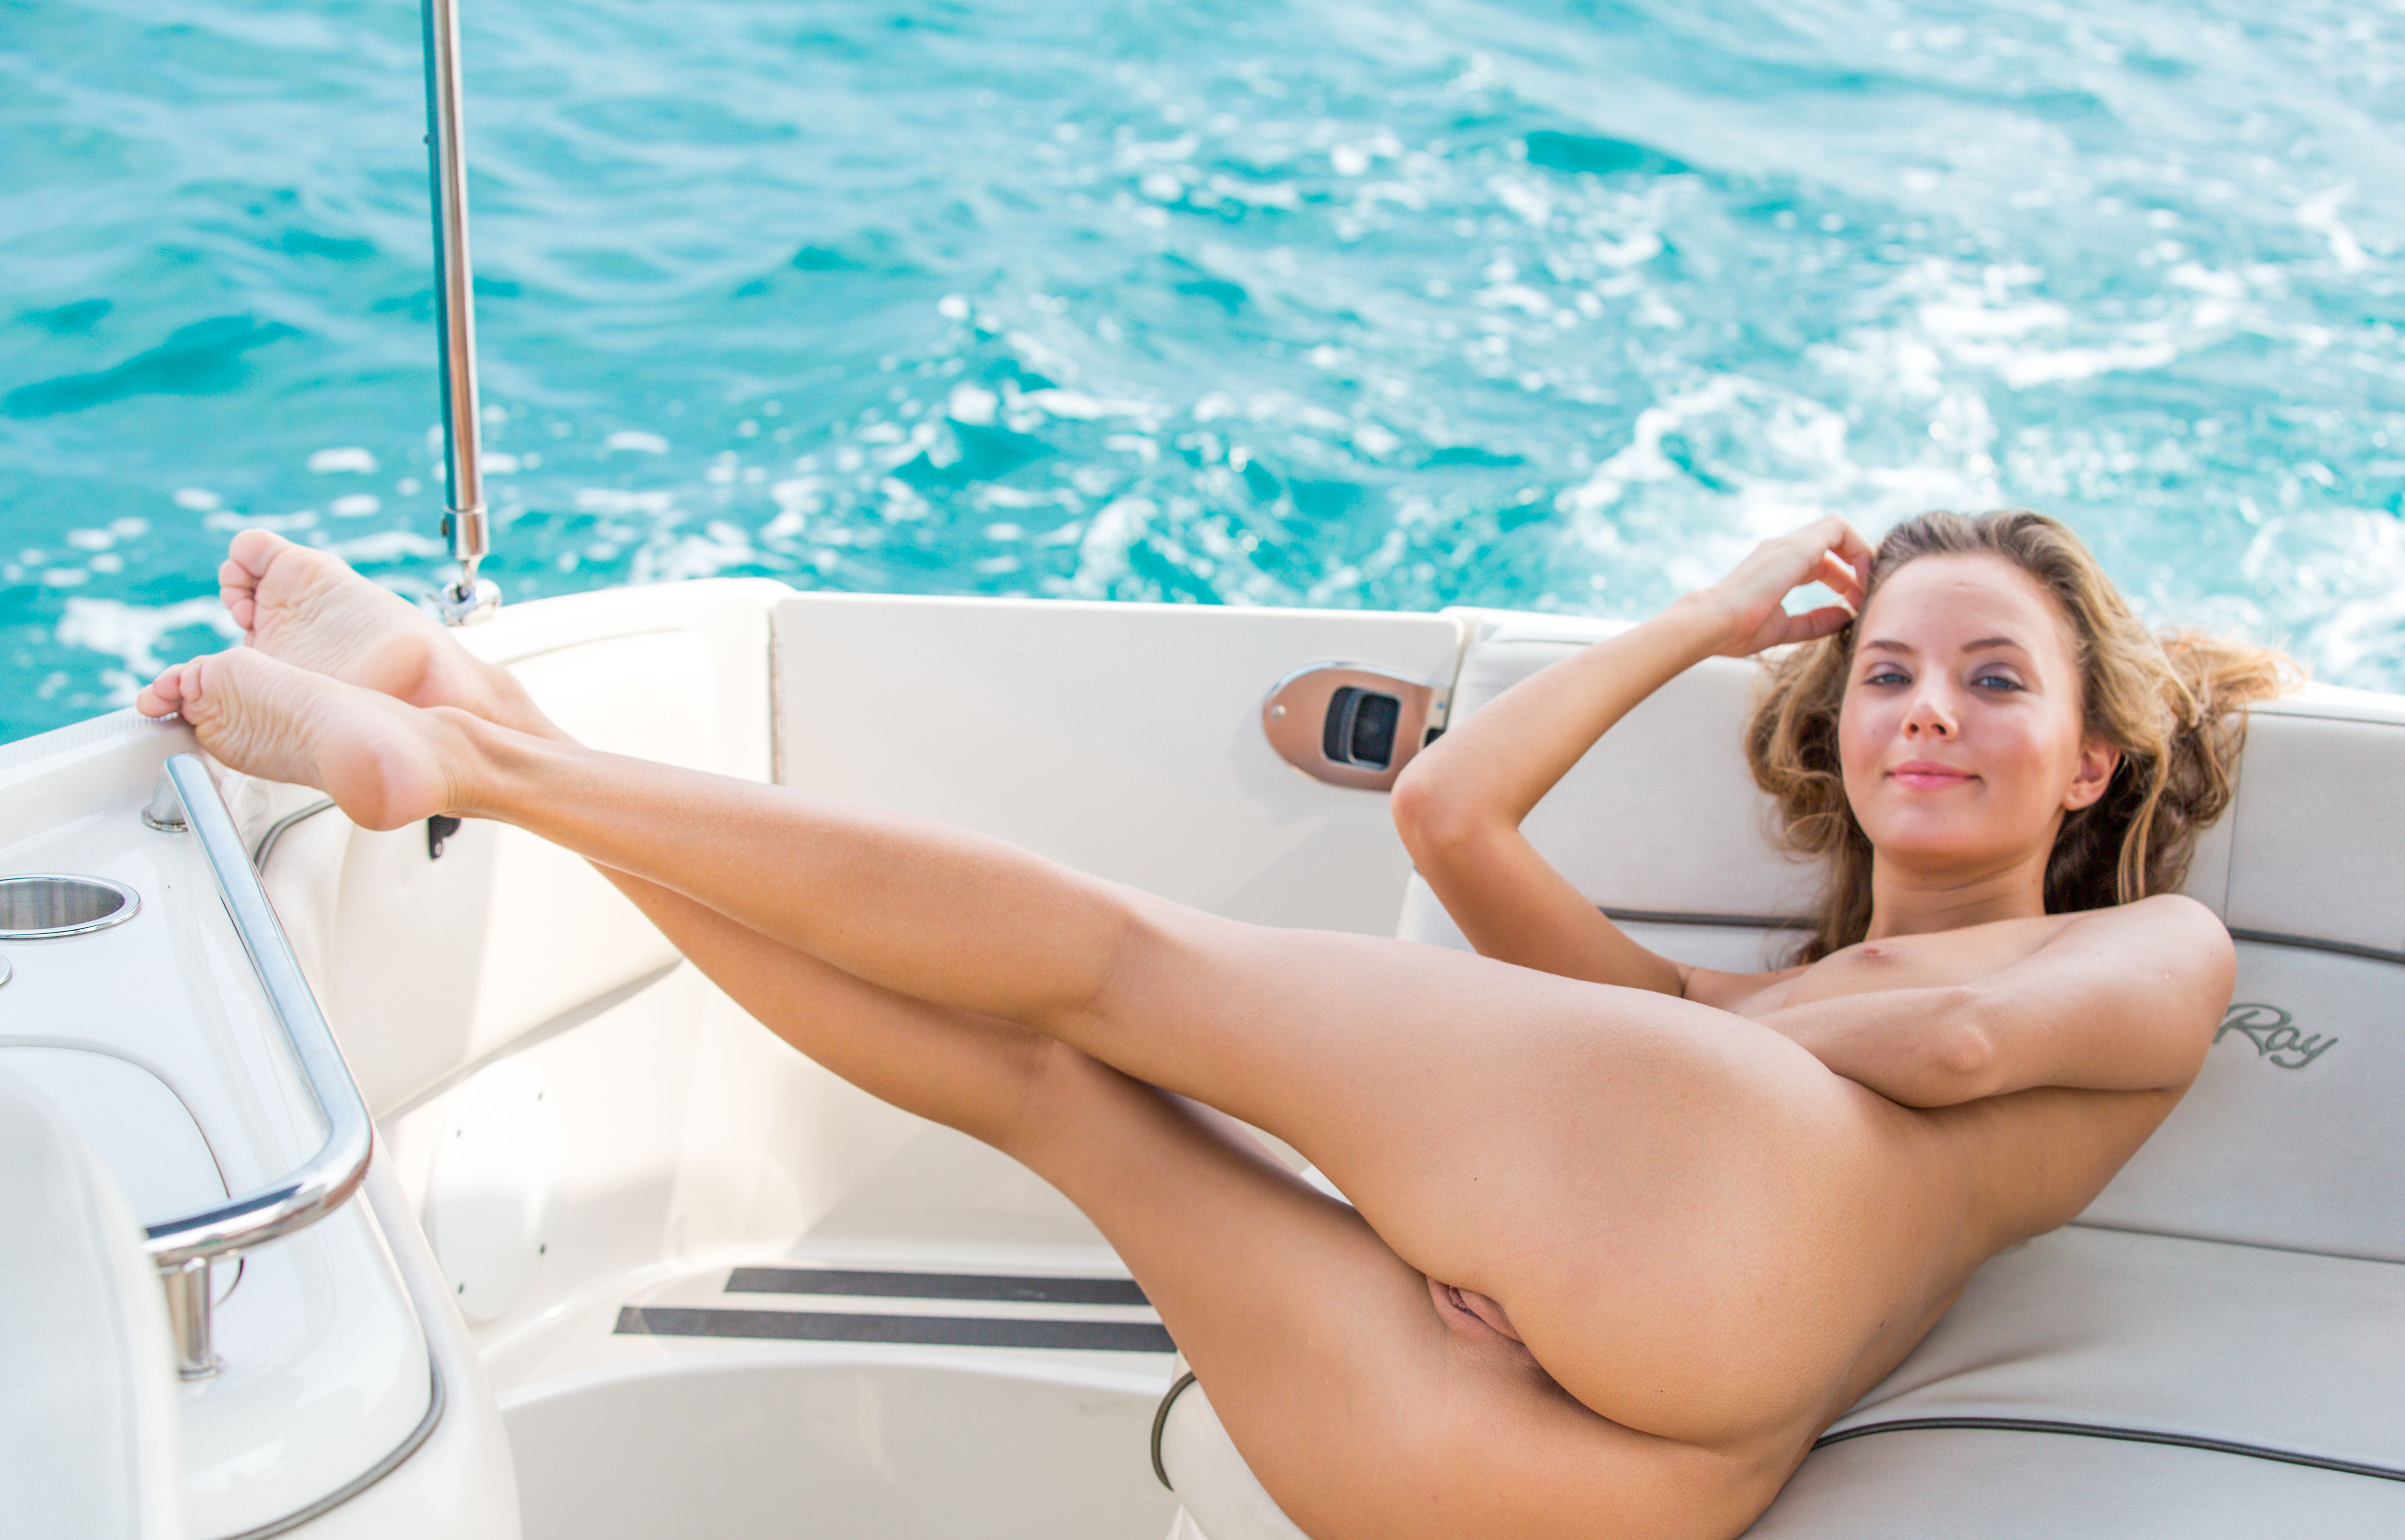 Love new shaved pussy videos on yachts getting